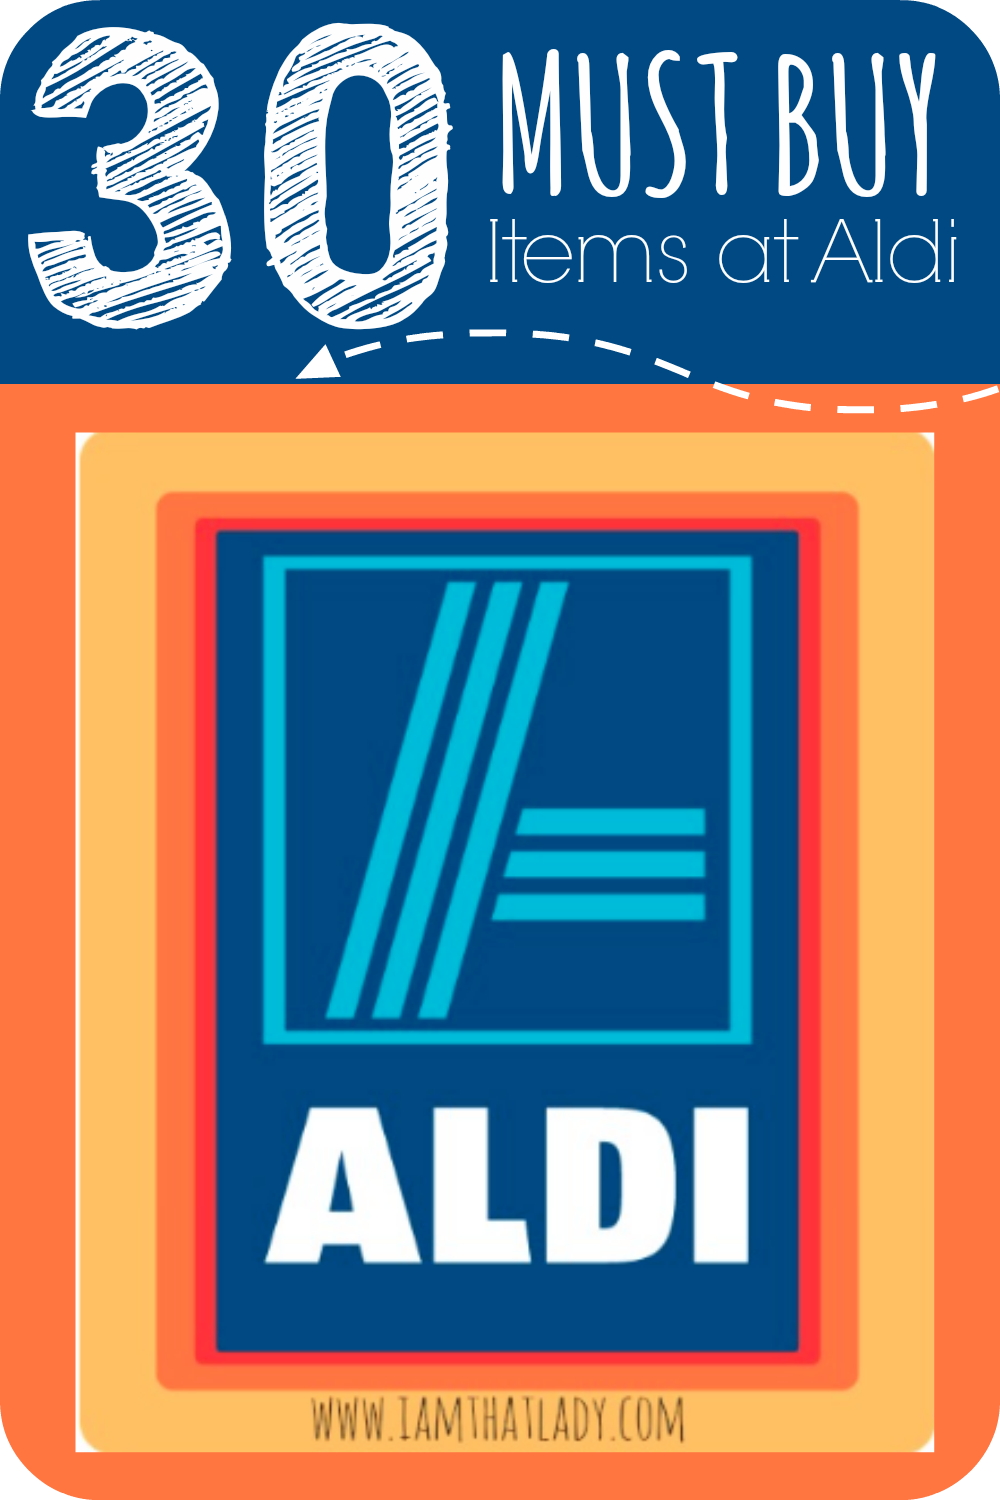 If you've never shopped at Aldi you may be wondering what is good there or what to buy. Here is a list of 30 MUST BUY items at Aldi. Ranging from Almond Butter, Cheese Sticks, Coconut oil, and many more!